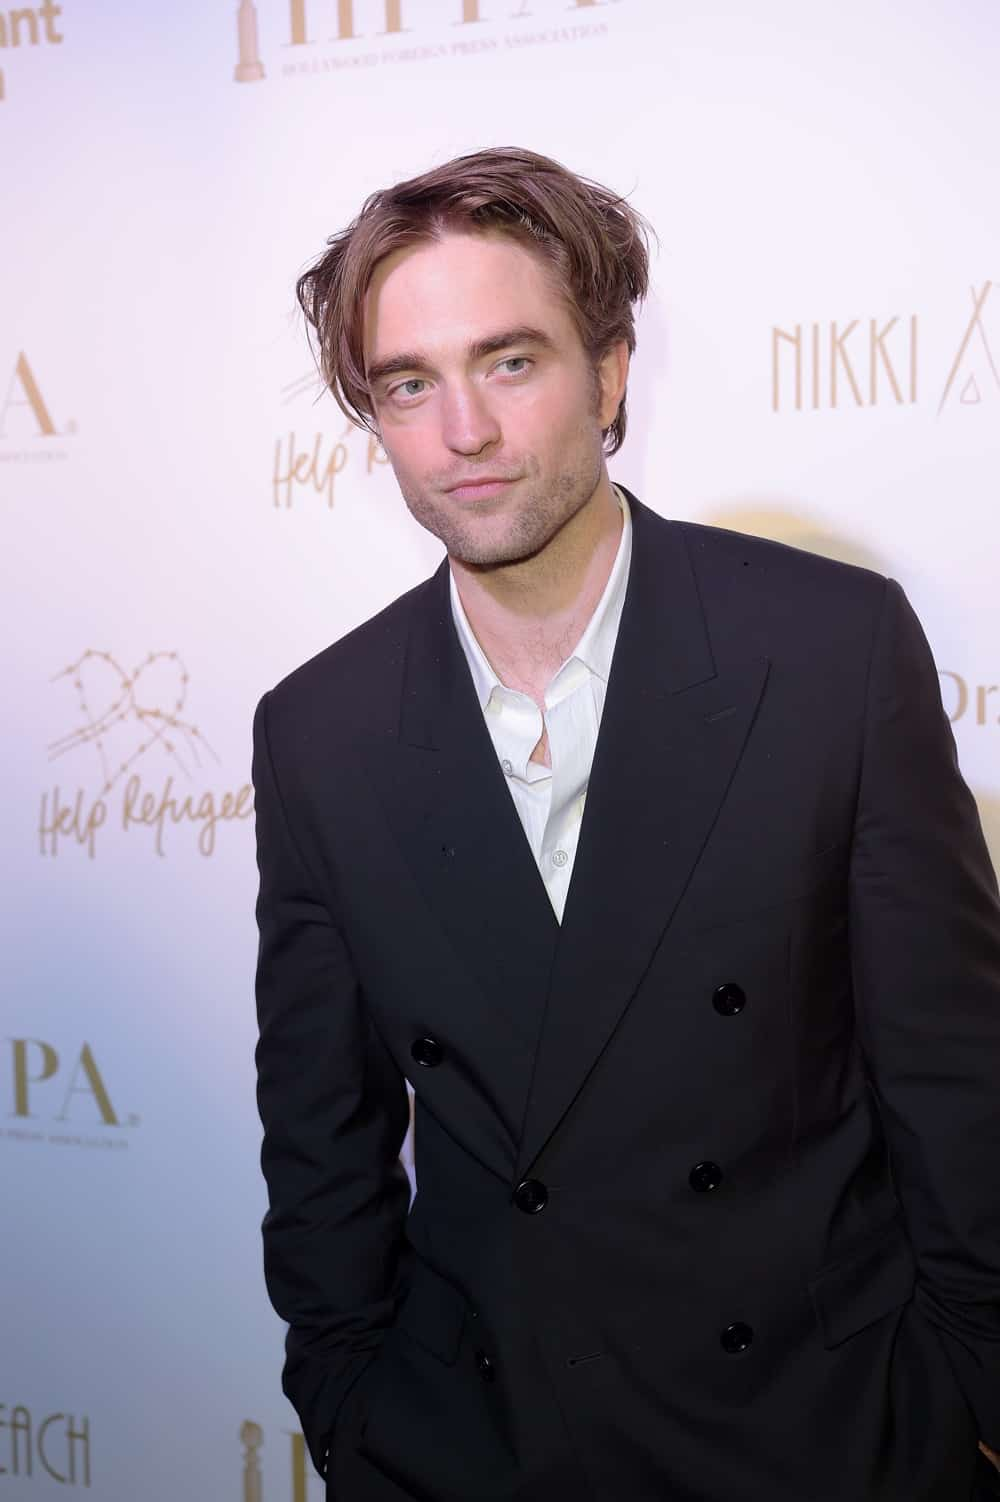 Robert Pattinson HFPA & Participant Media Honour Help Refugees' Arrivals - The 72nd Annual Cannes Film Festival